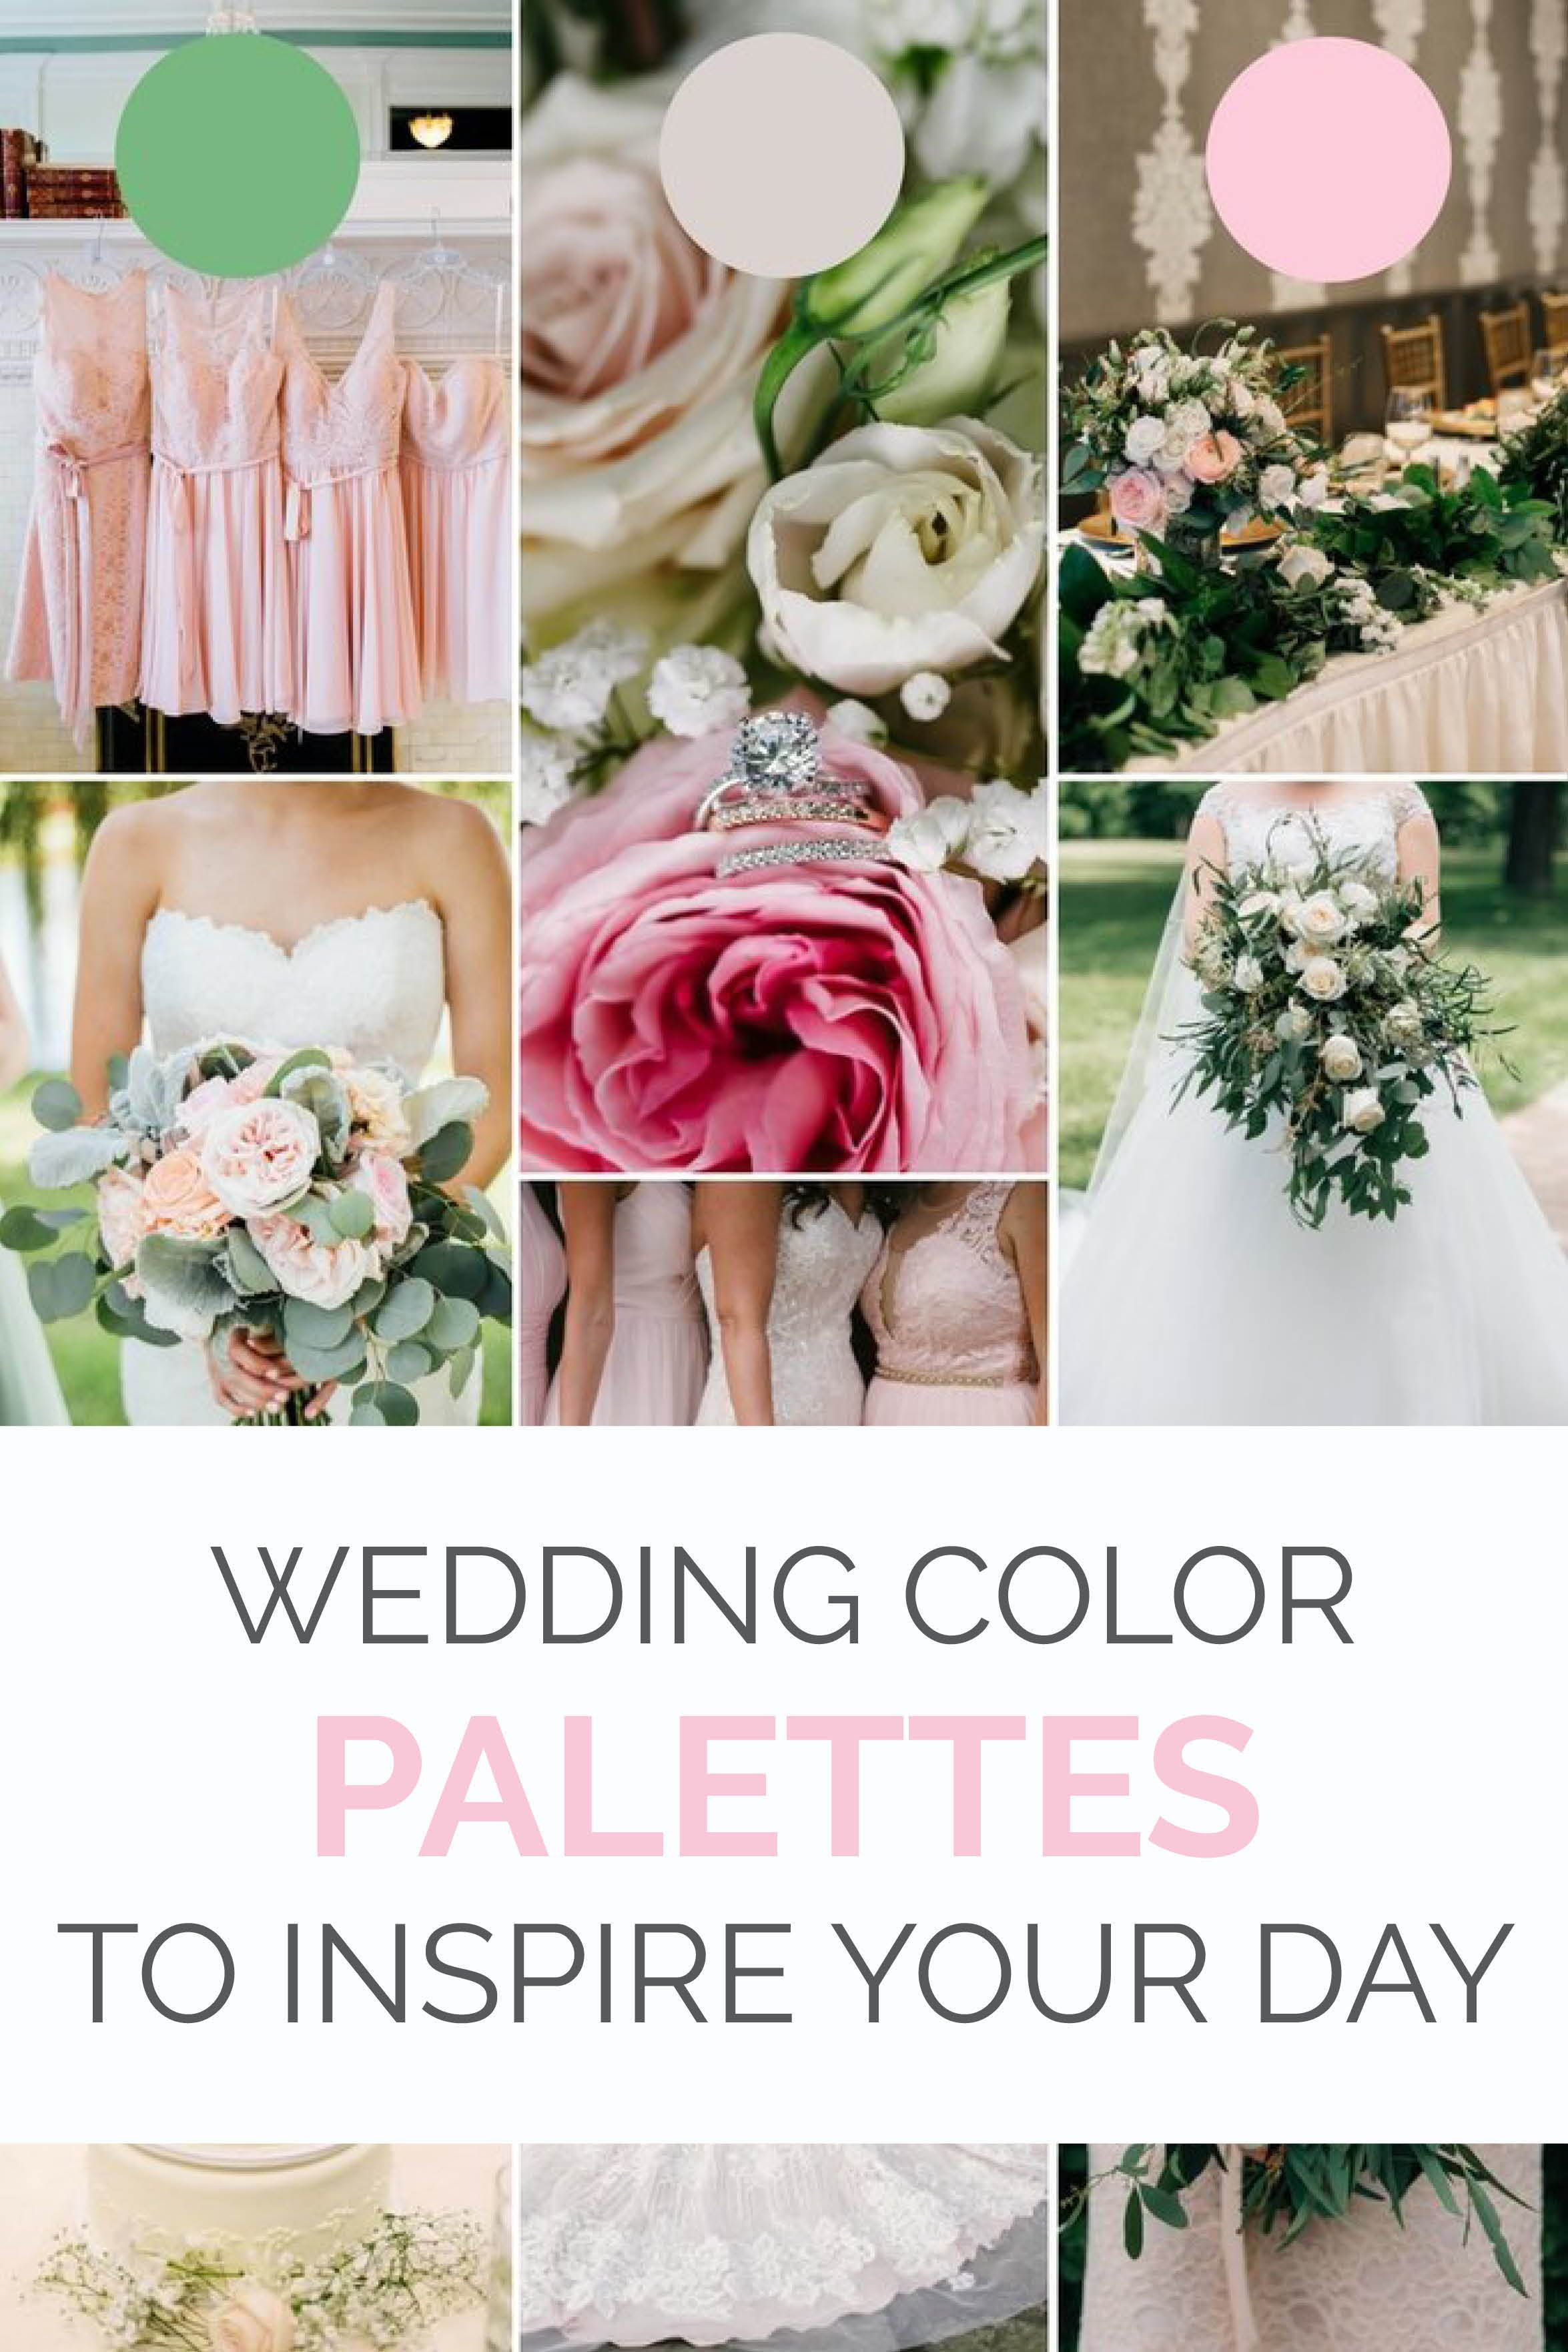 Spring Wedding Colors 2018.2018 Wedding Color Palettes To Inspire Your Big Day Bridesmaids